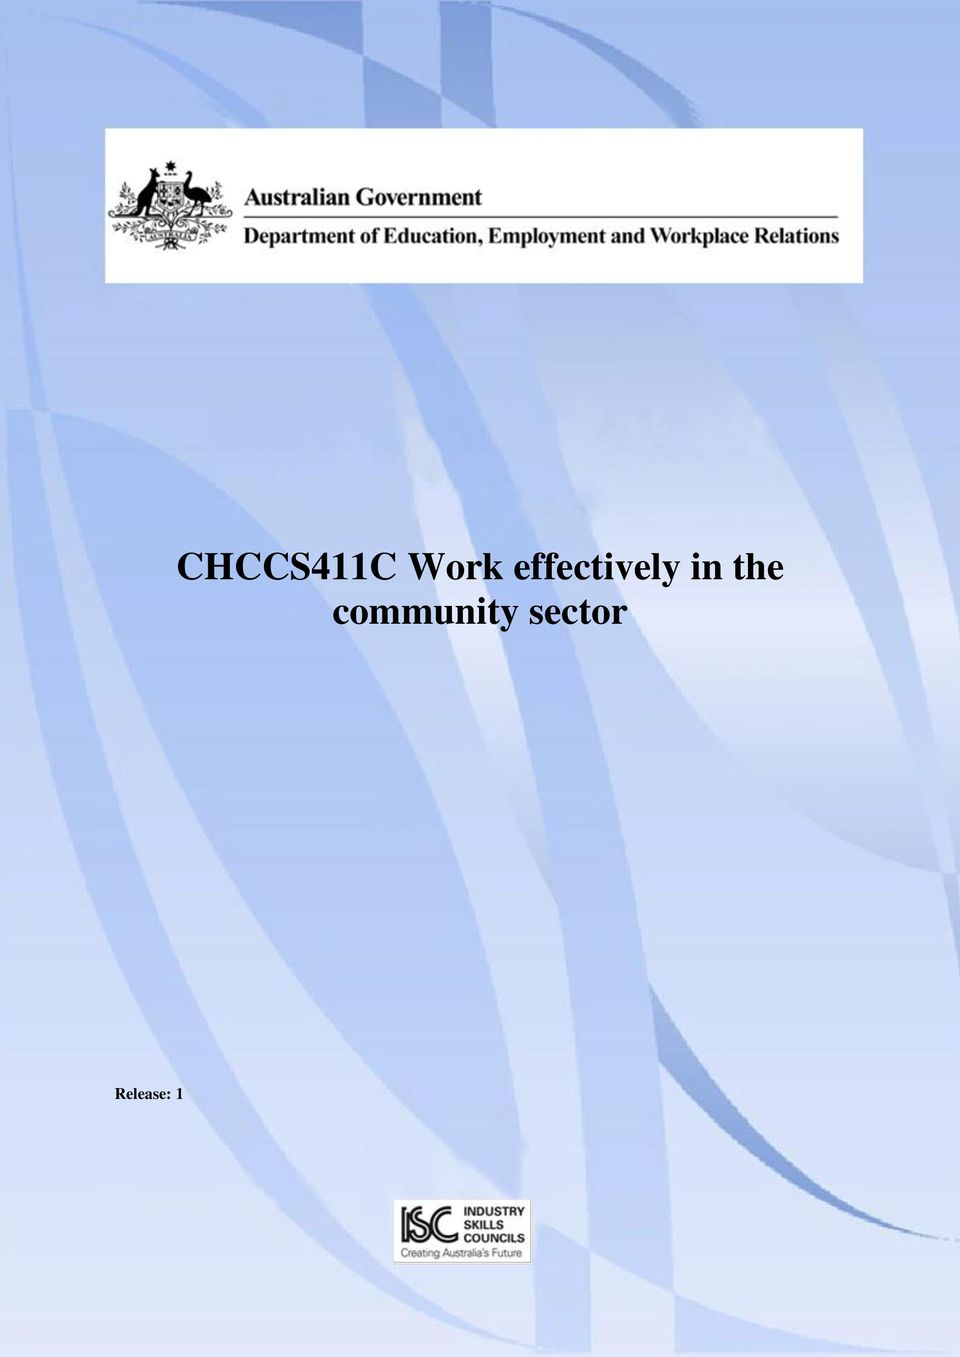 chccs411a work effectively in the community Community services institute of training  work and/or community education or development  community services work: chccs411a work effectively in the community.